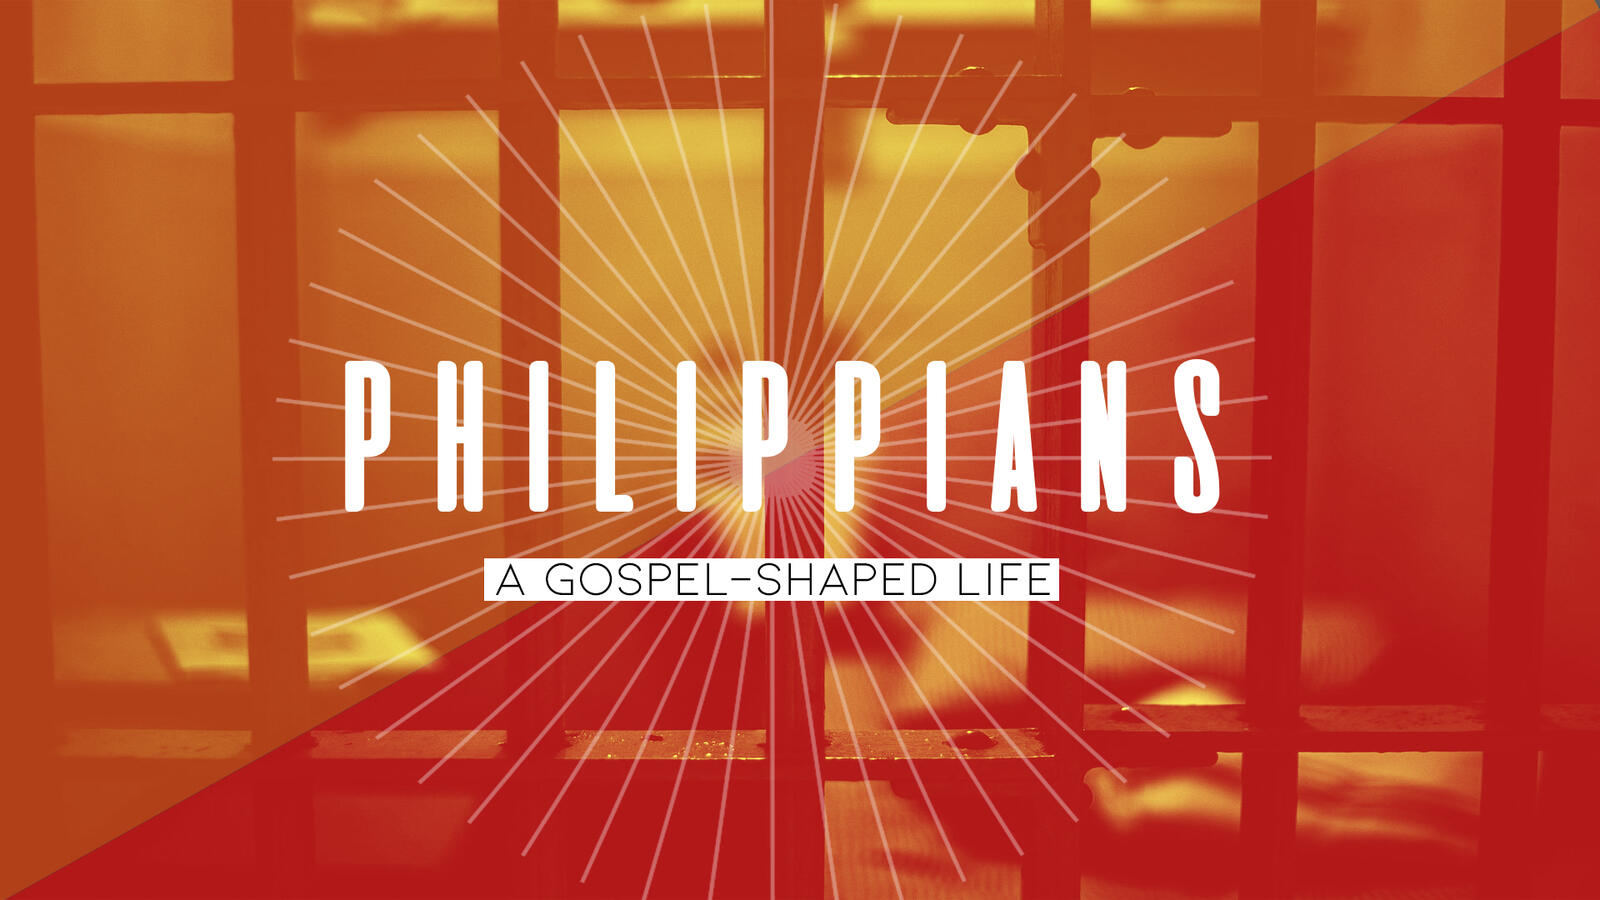 03/17/19 - Nathan Forrest - Philippians 1:10-18